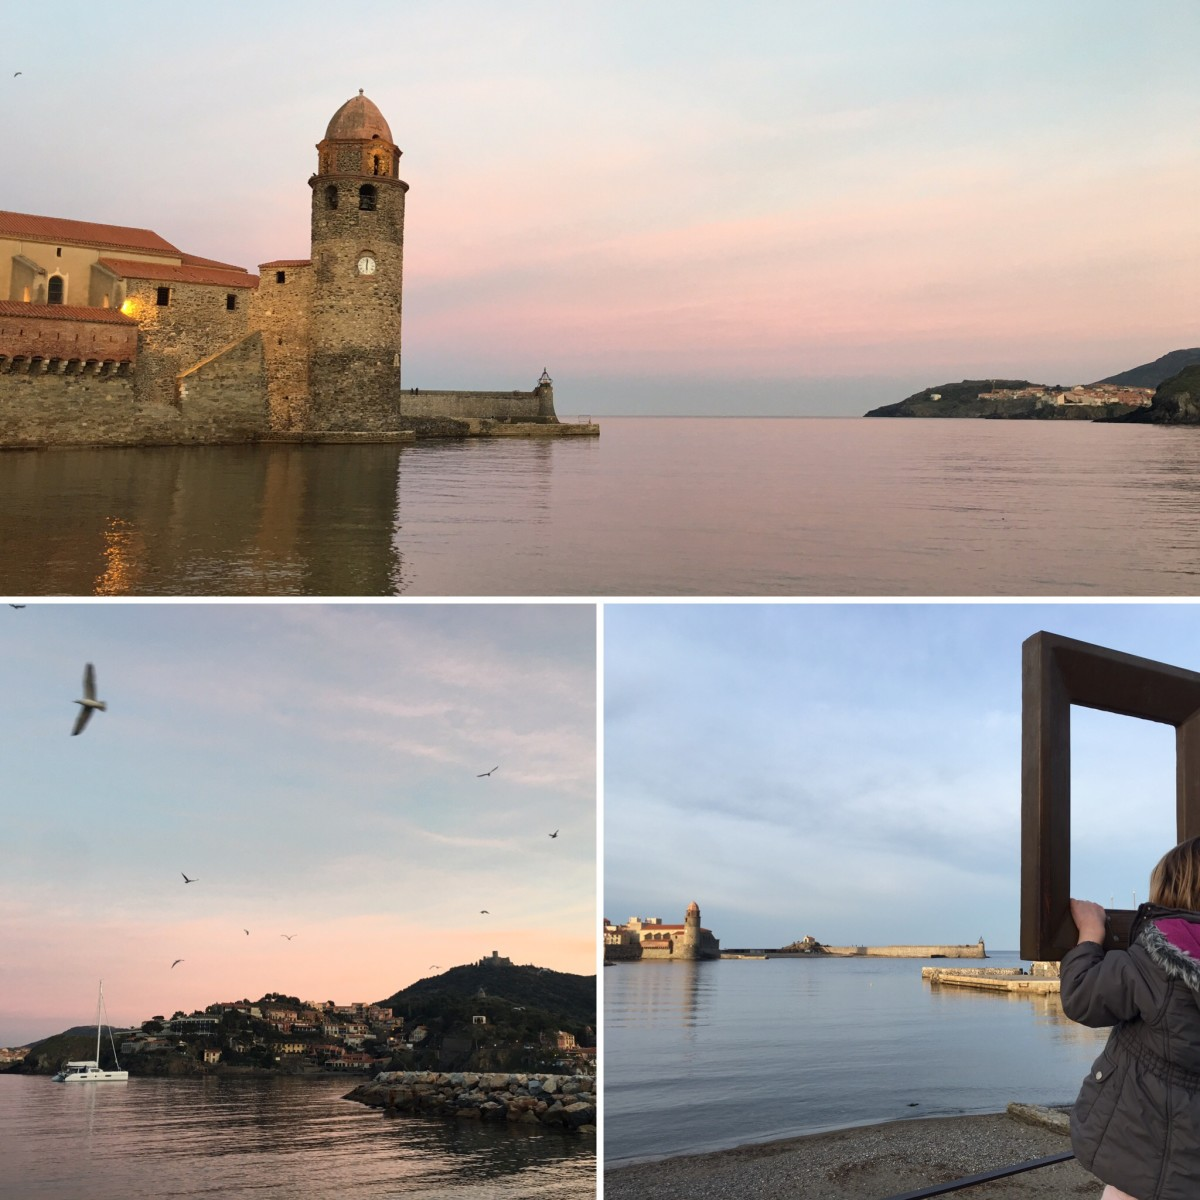 town of Collioure